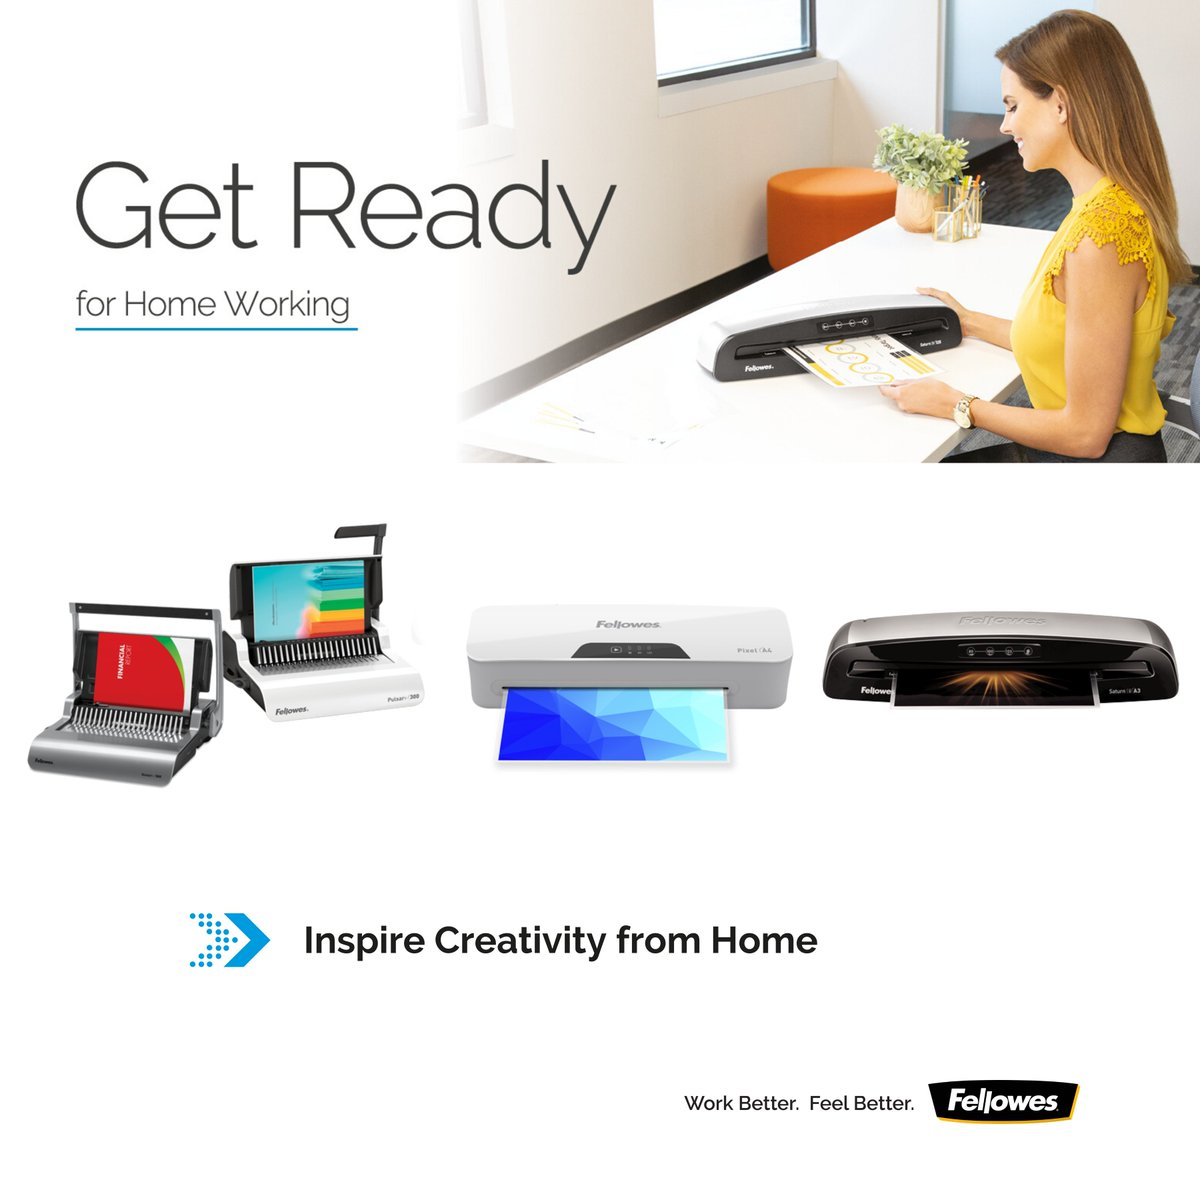 Having the right resources can inspire cost-effective creativity & productivity, from binding project documents to creating professional-looking work planners, children's art and recipe cards with your own laminator.  See our full range here ➡️https://bit.ly/2WKaGYr